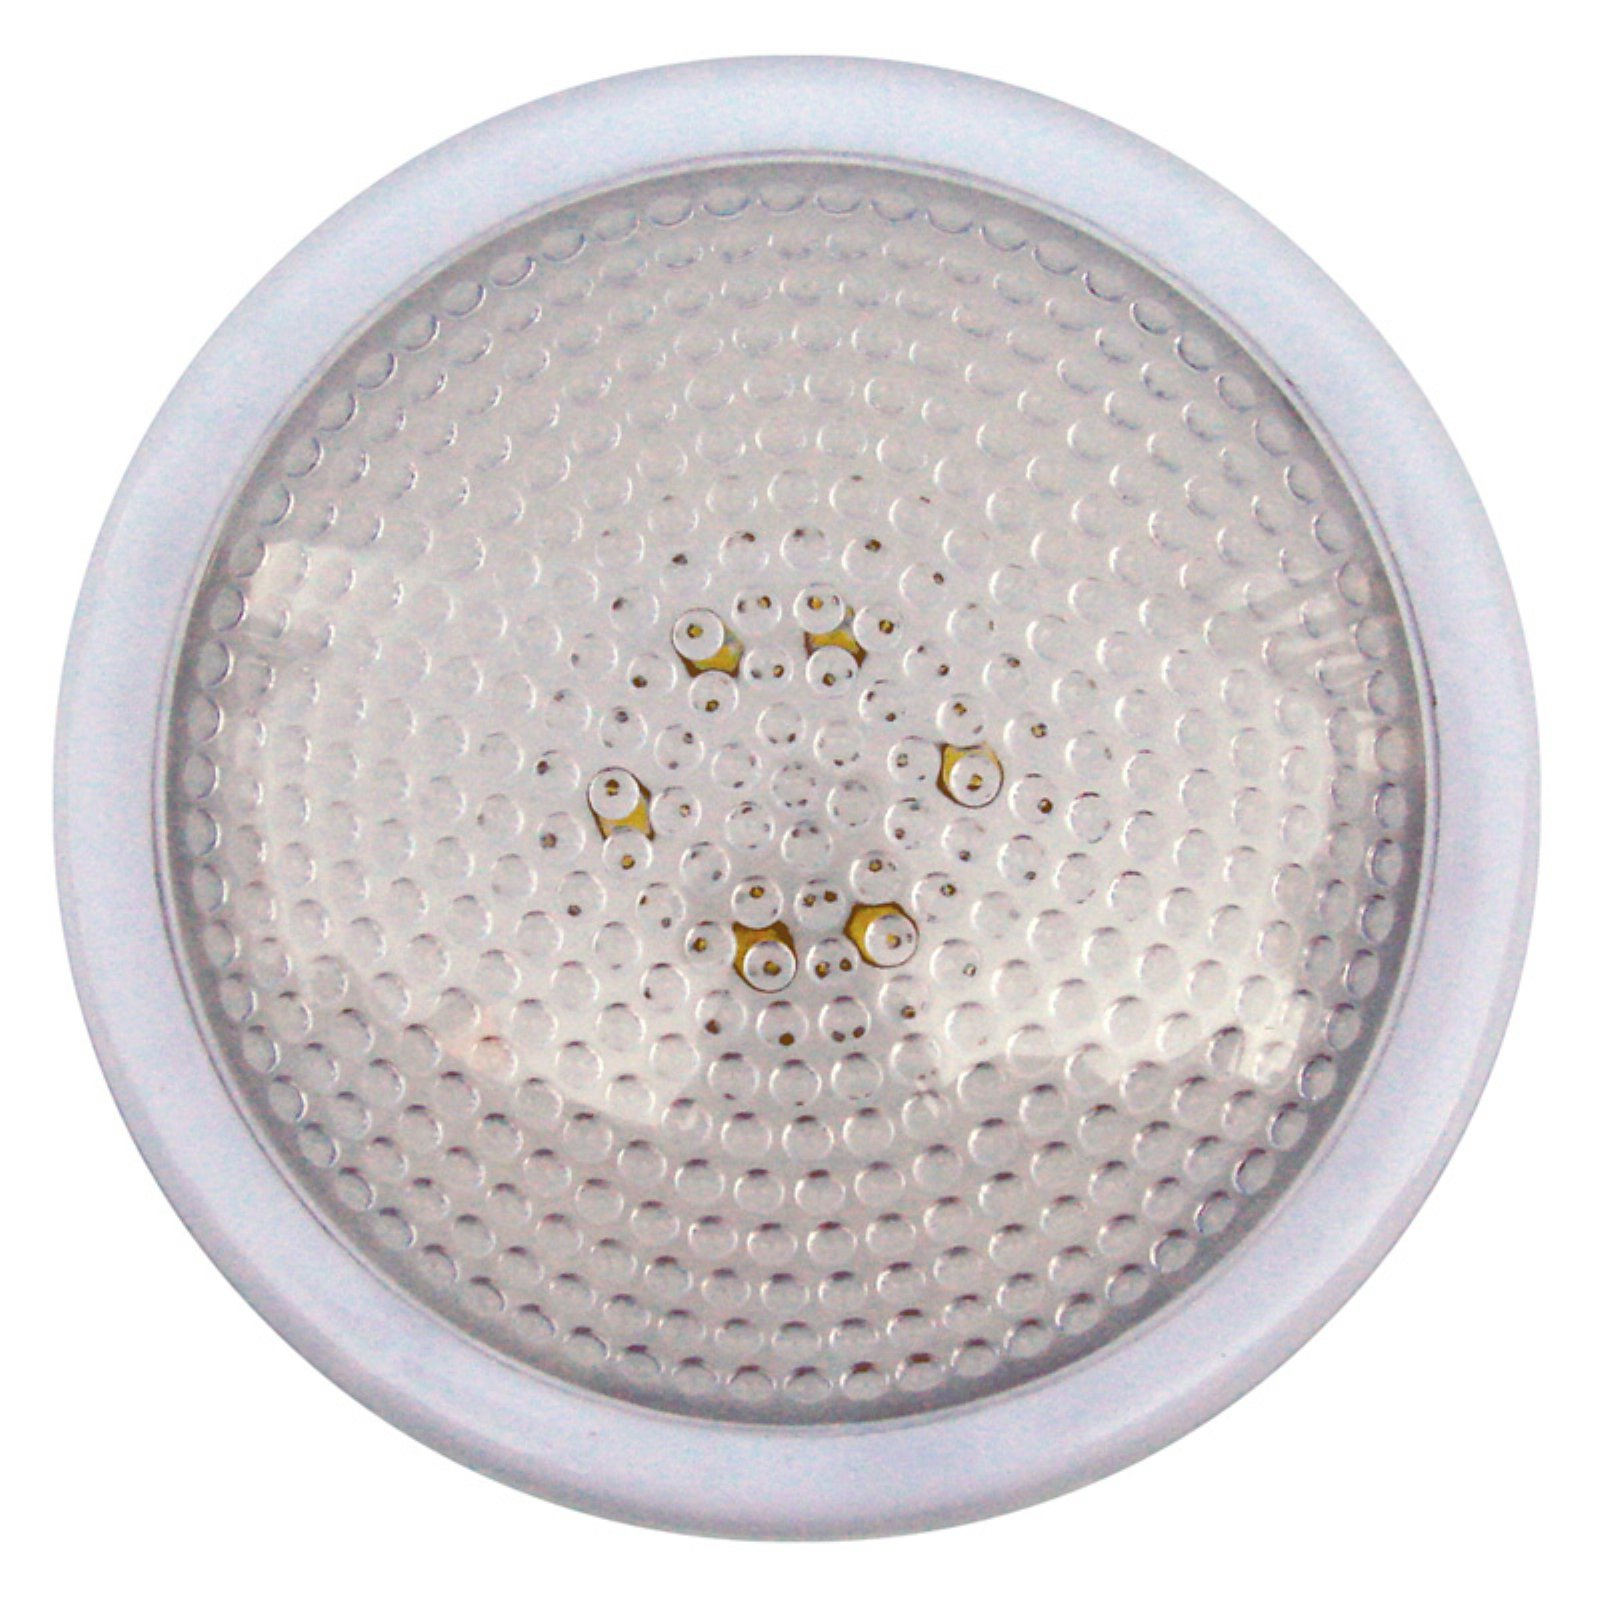 Dorcy 41-1077 Indoor and Outdoor Portable LED Push-N-Light, White Finish